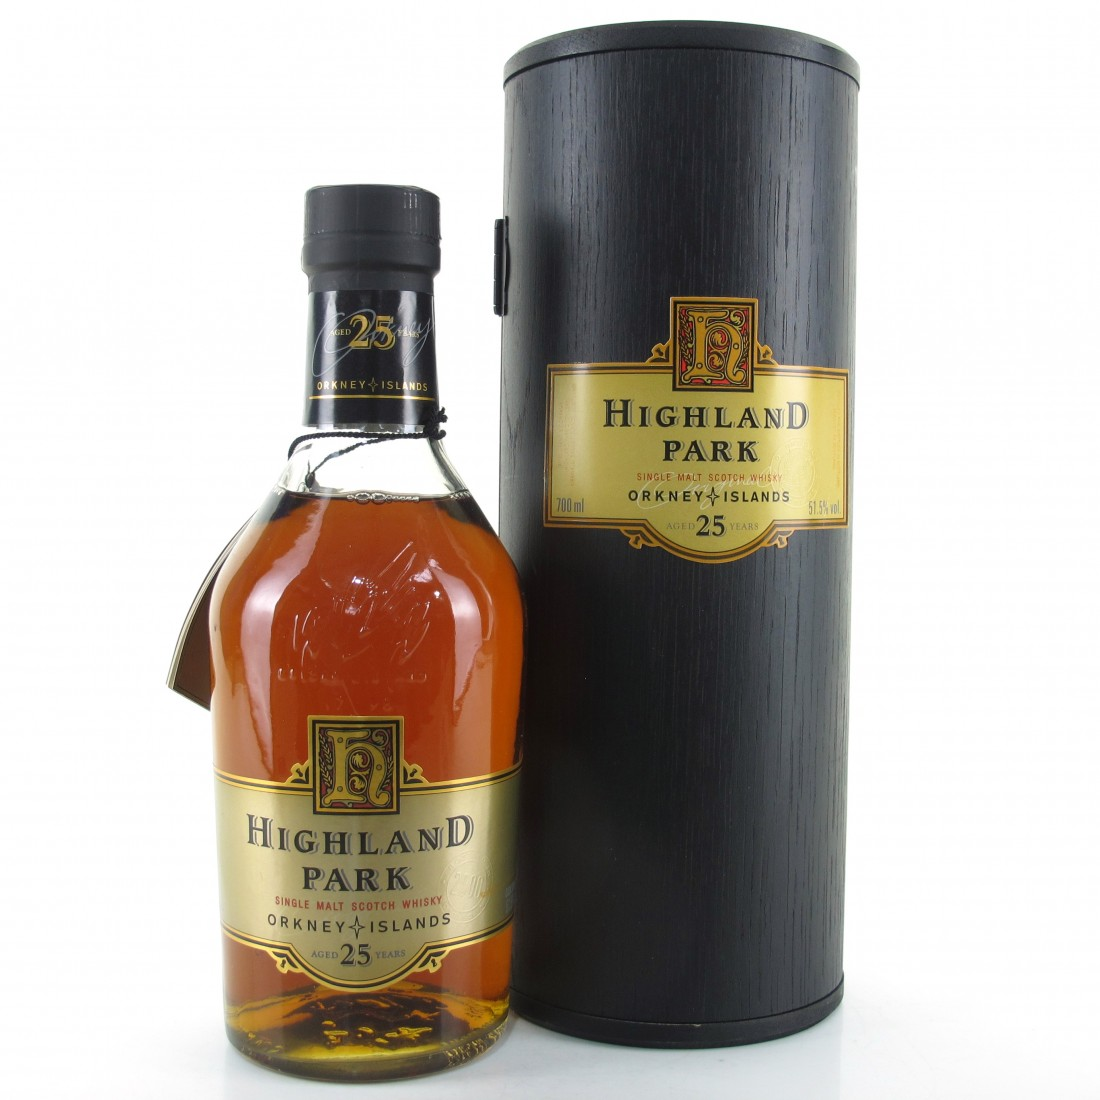 Highland Park 25 Year Old Cask Strength